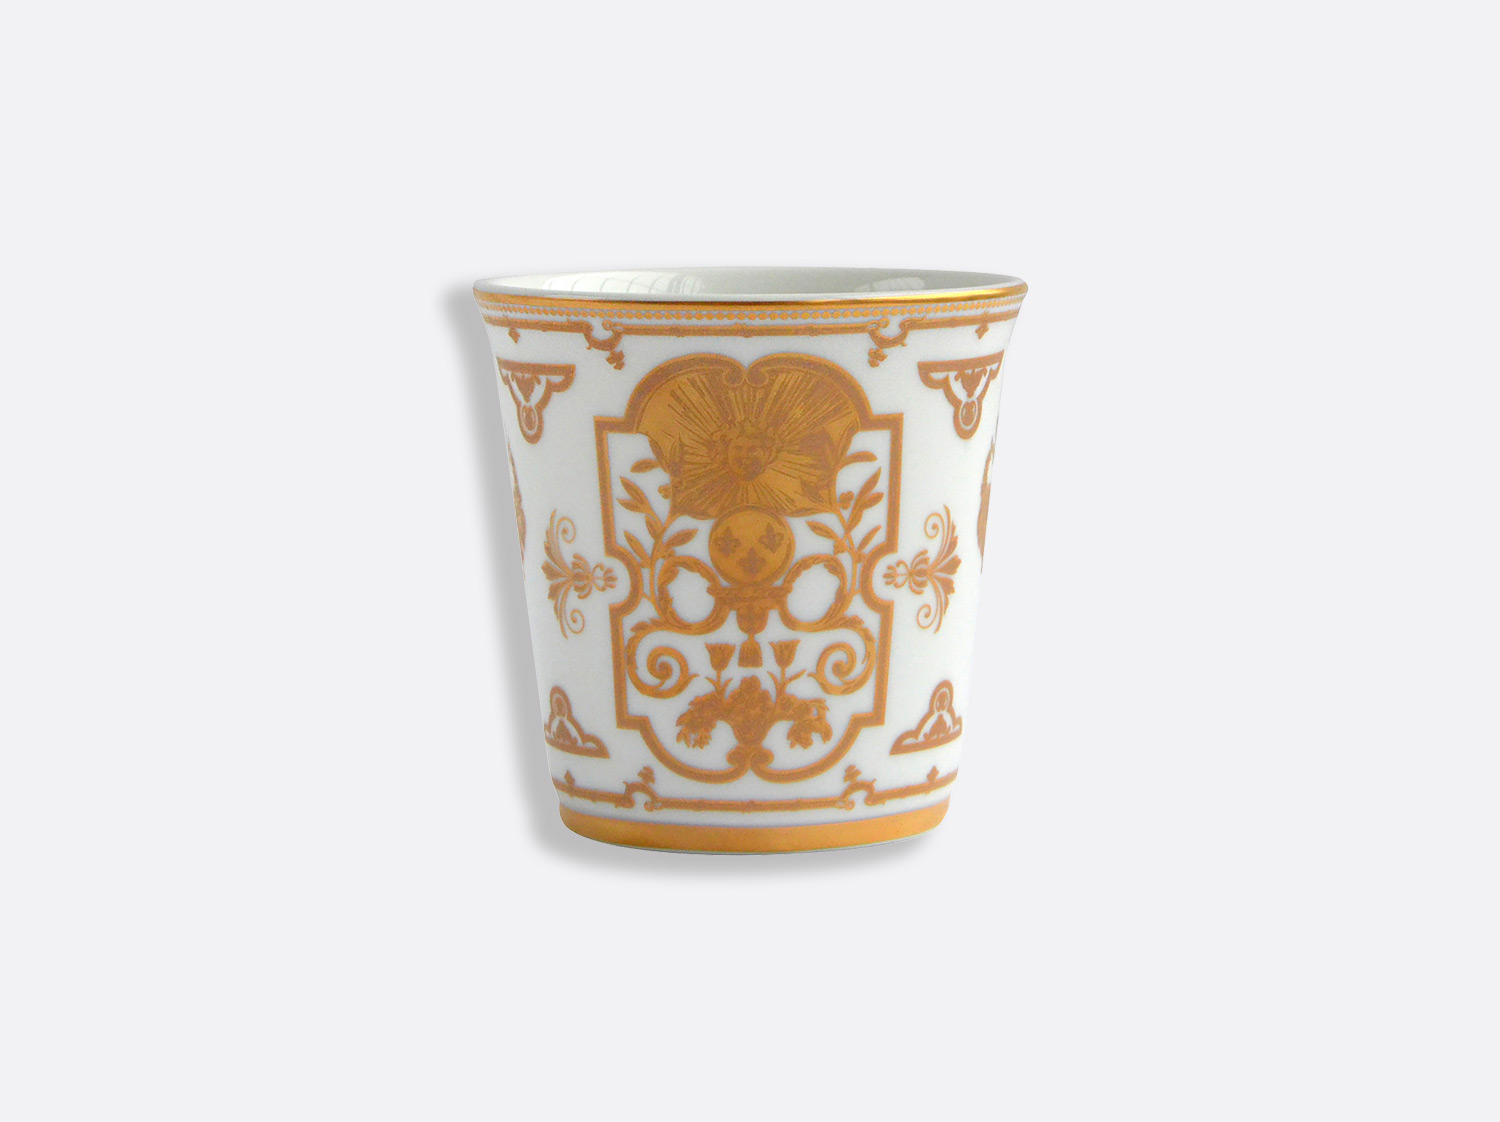 China Tumbler + candle home fragrance 200g of the collection Aux Rois Or | Bernardaud